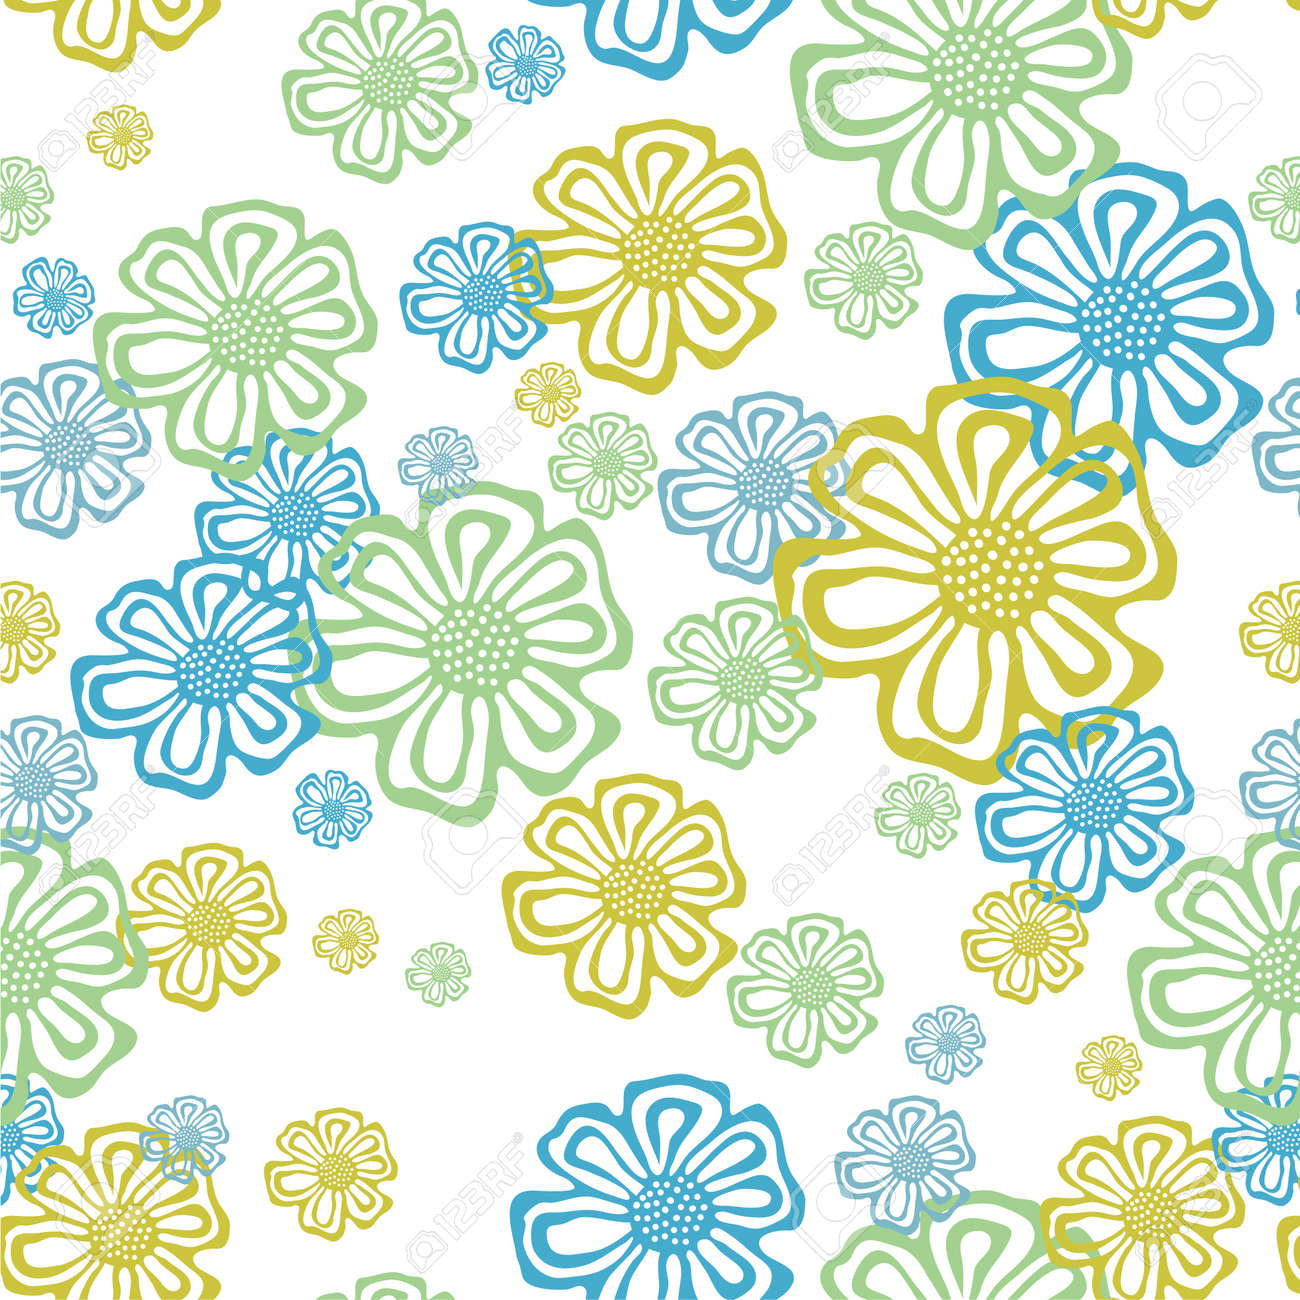 Ornate floral seamless texture, endless pattern with flowers Stock Vector - 13141760